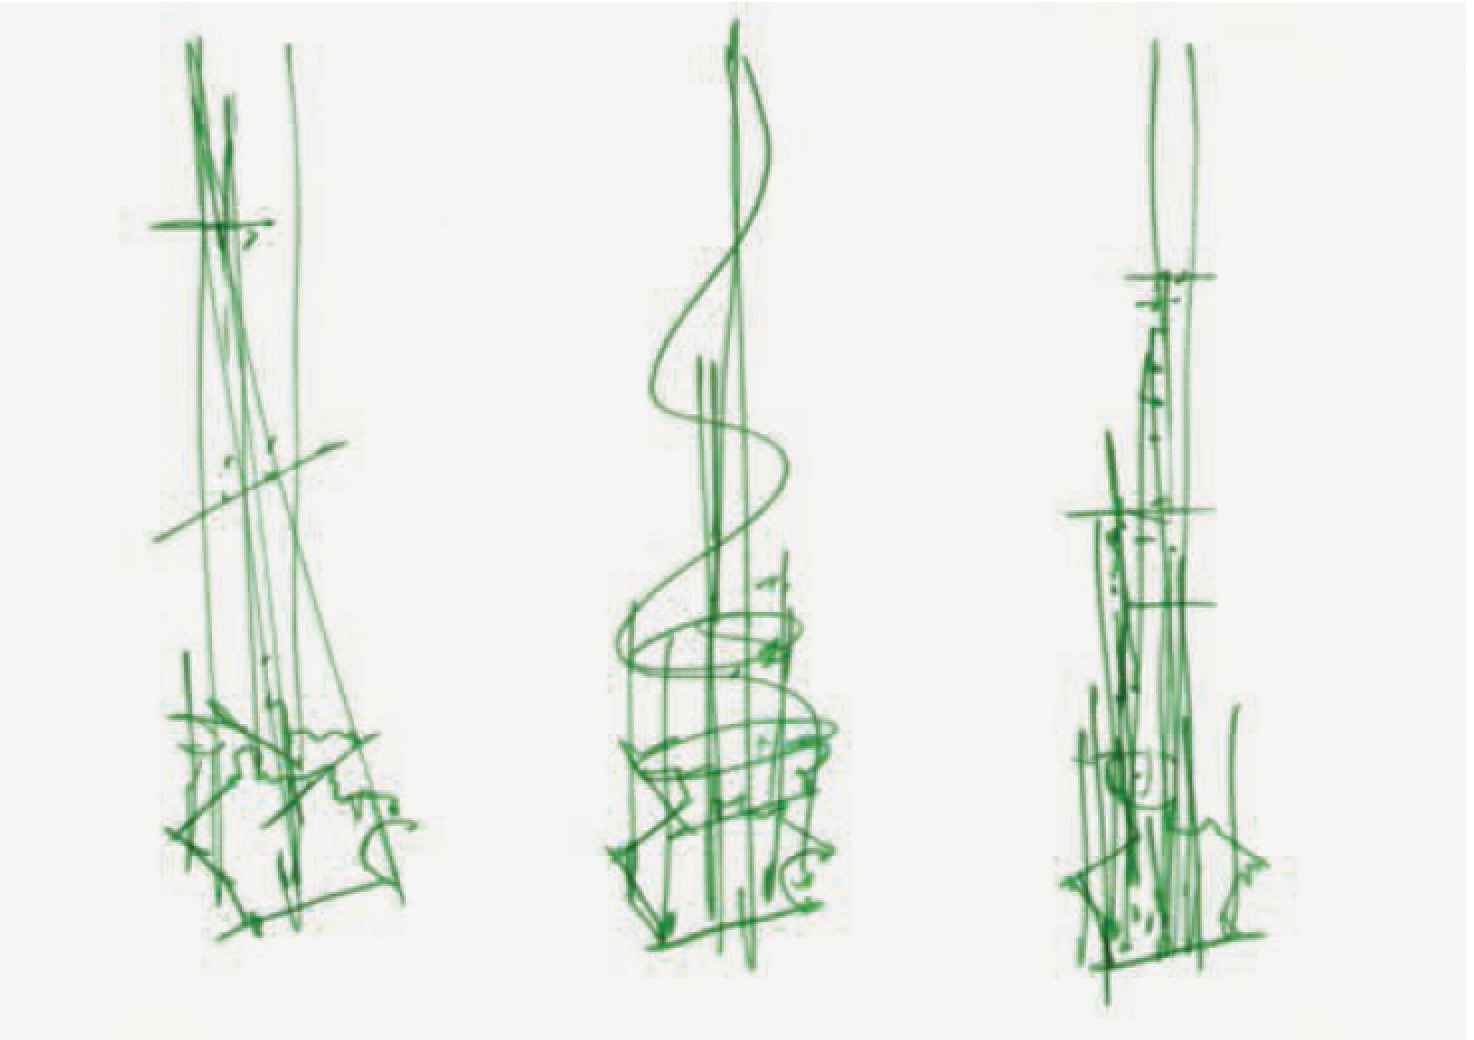 Renzo Piano's original sketches for The Shard as featured in Drawing Architecture